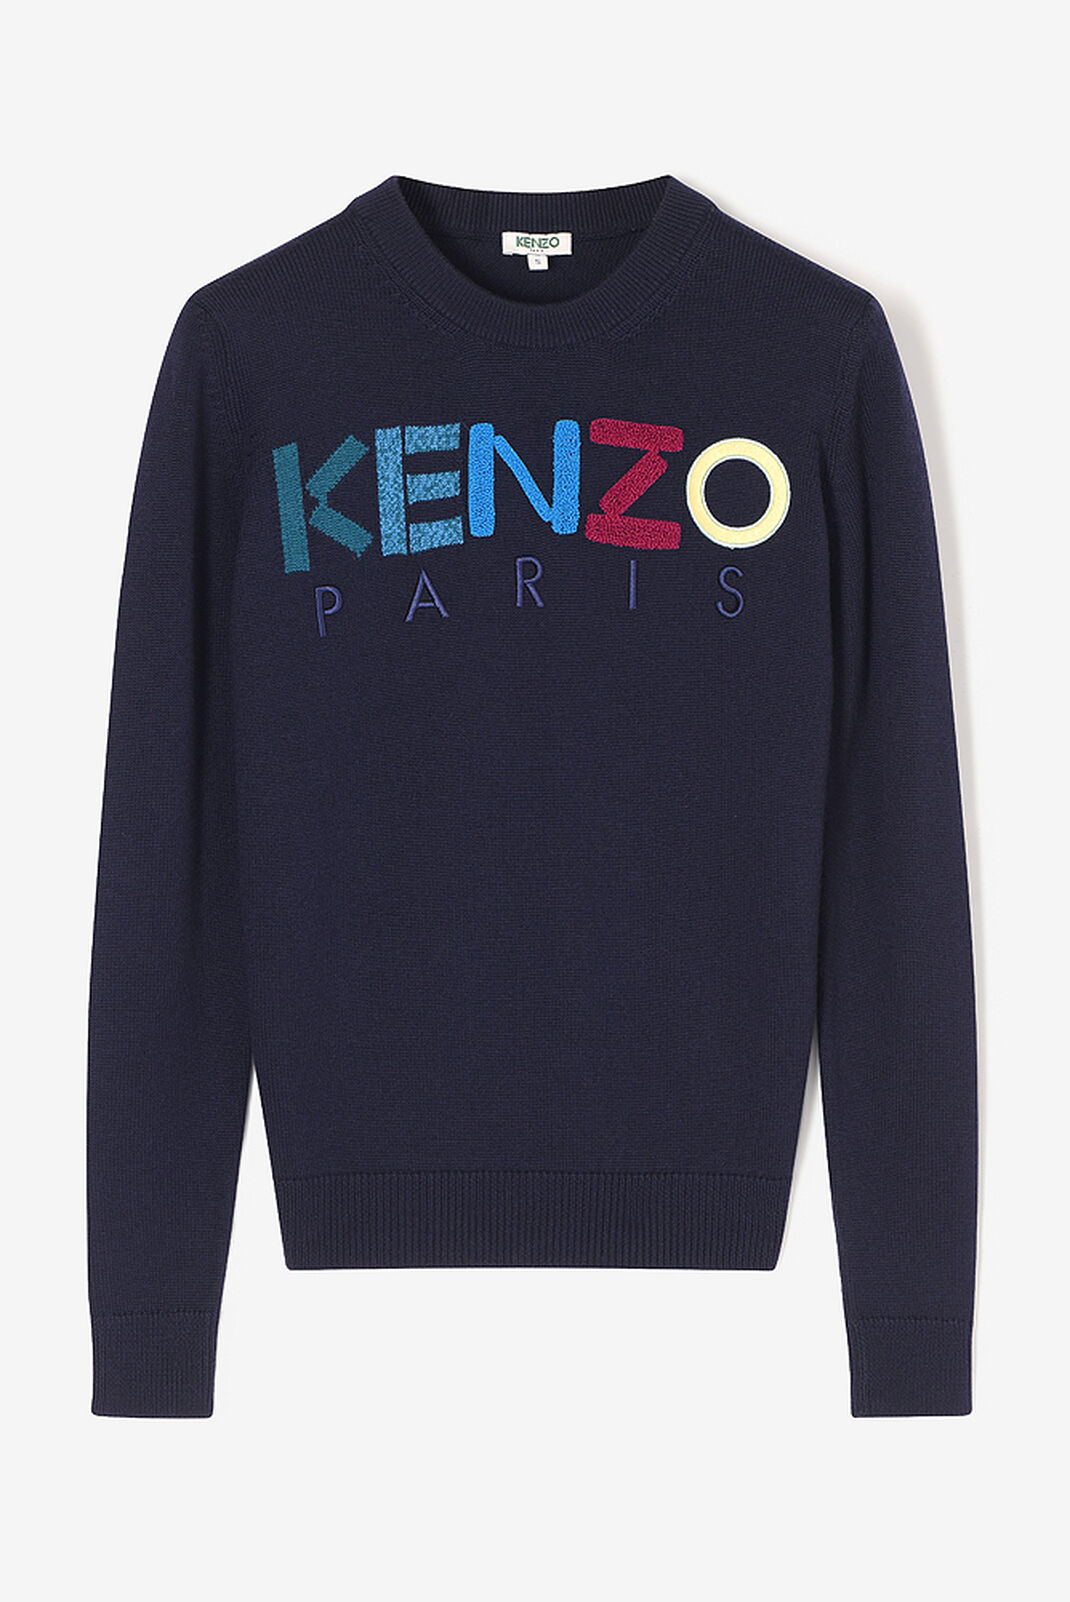 NAVY BLUE KENZO Paris Sweater  for women